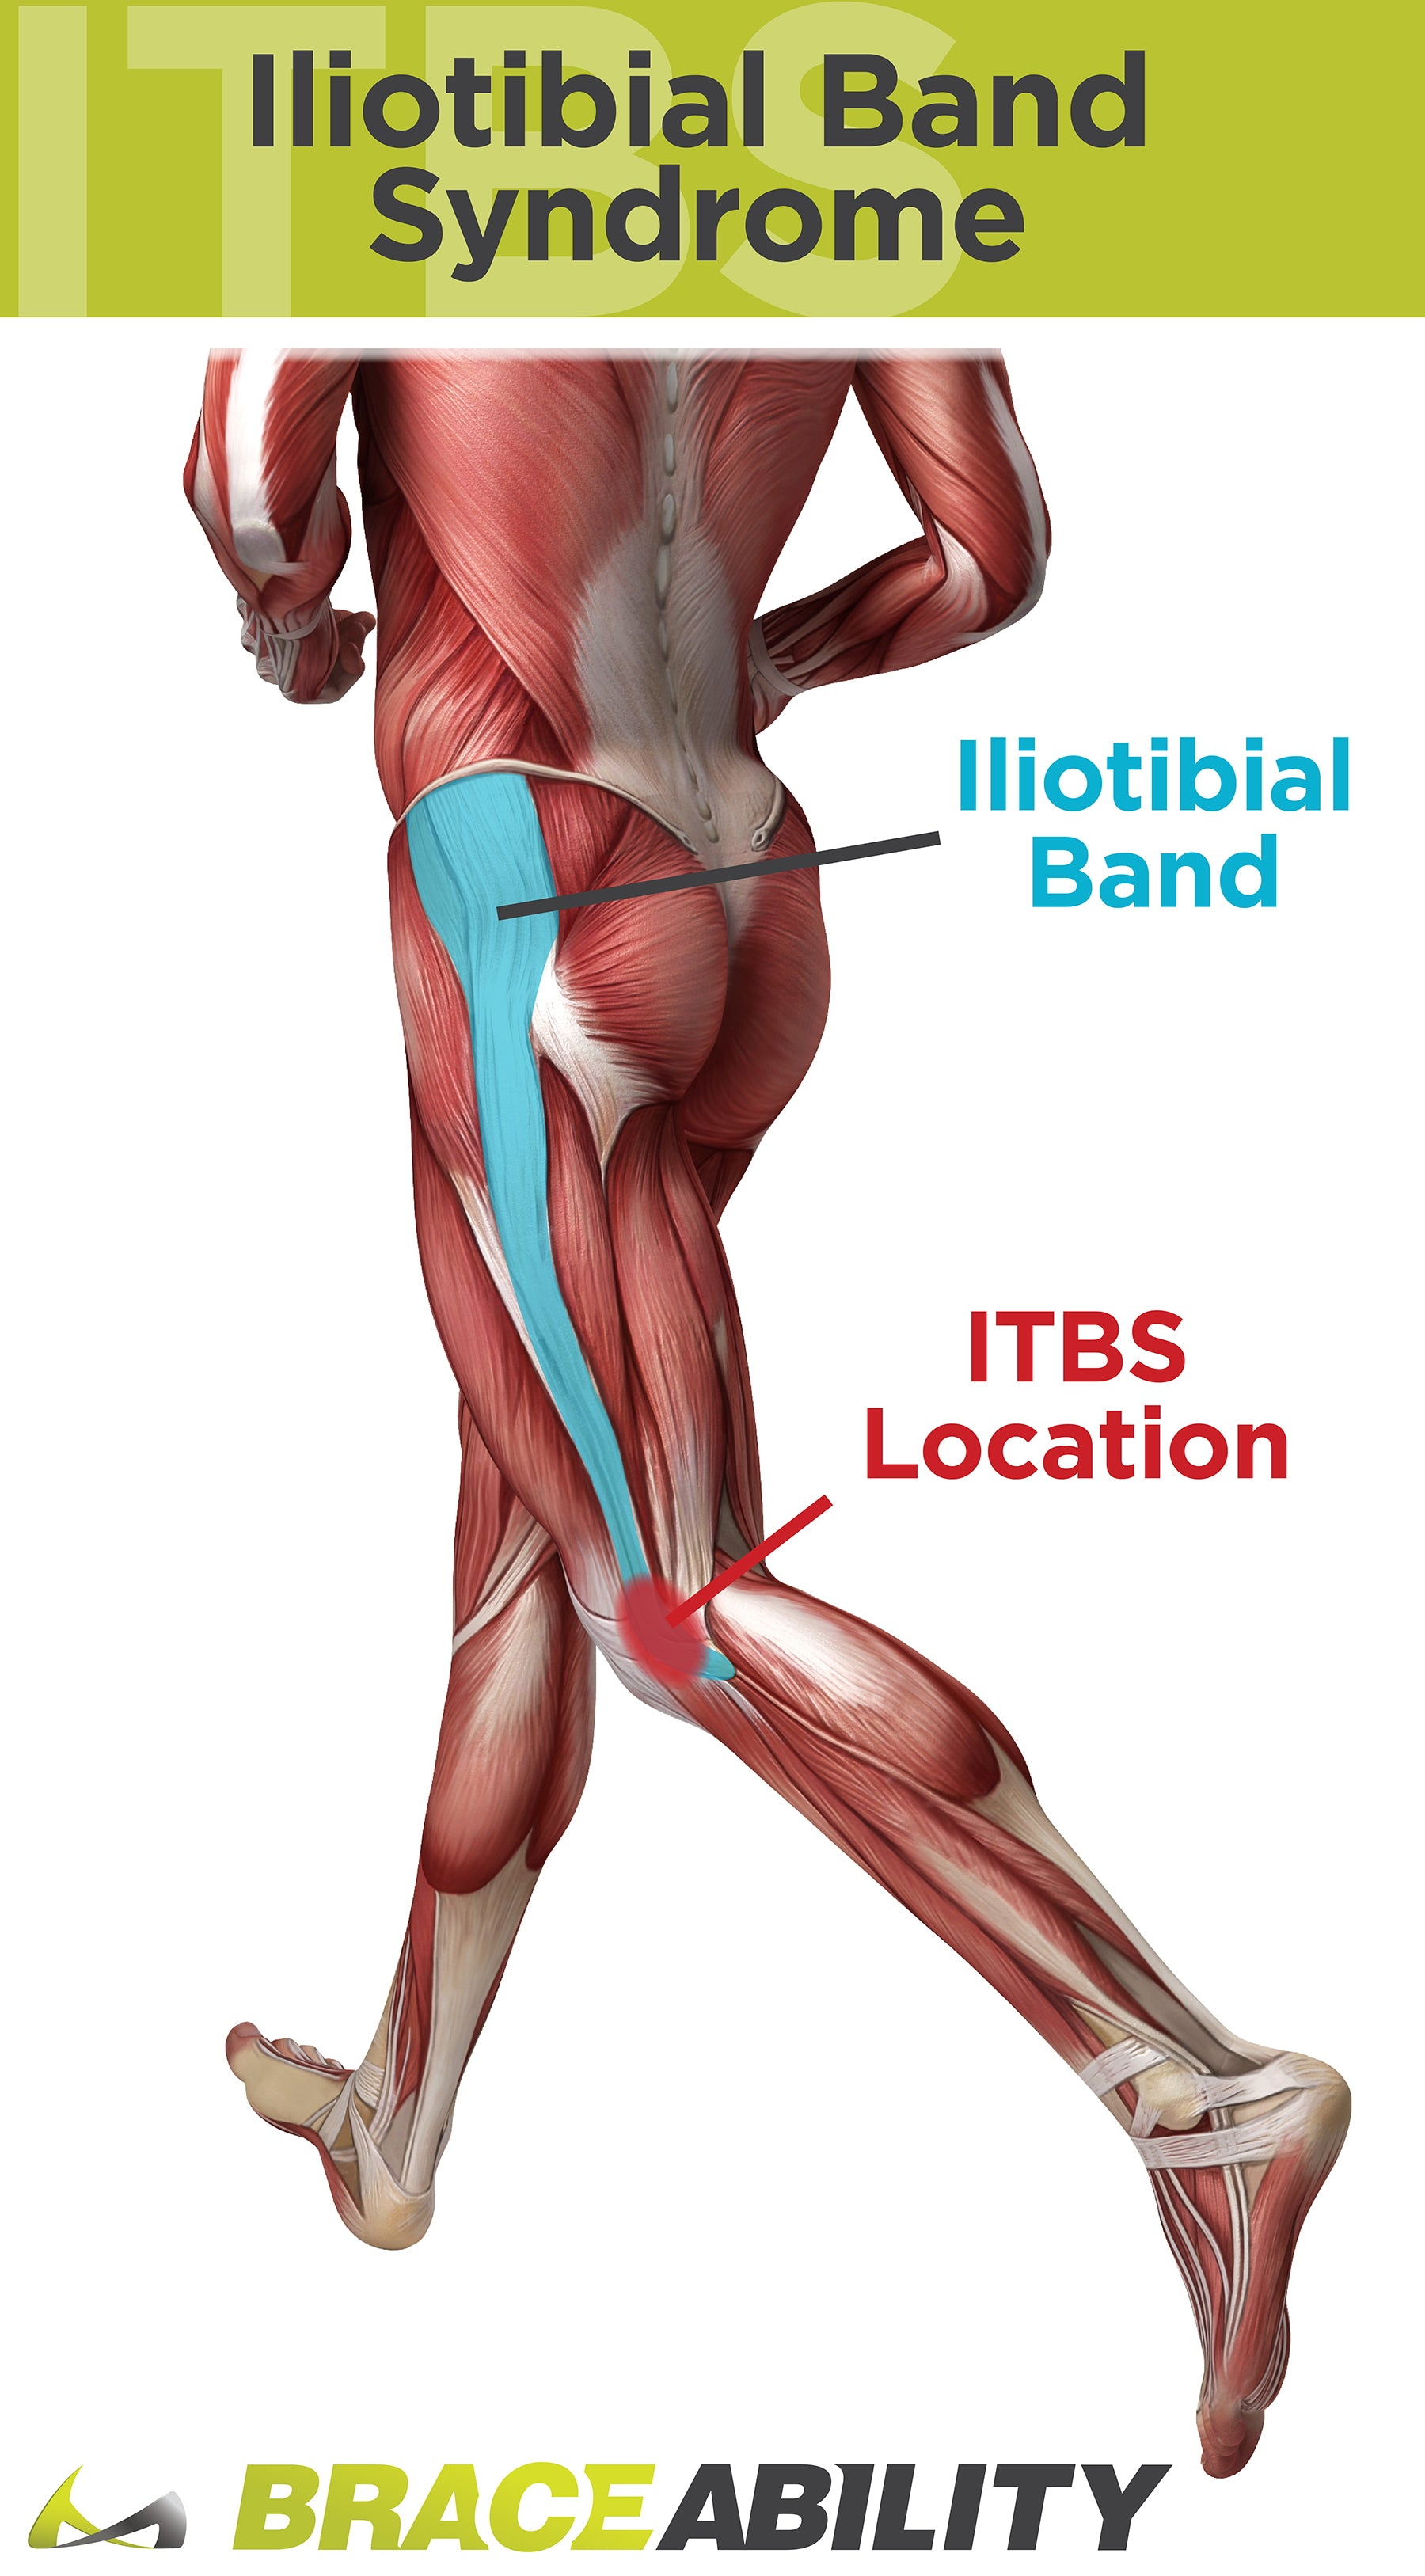 IT band syndrome is a leading cause of knee pain through the iliotibial band syndrome